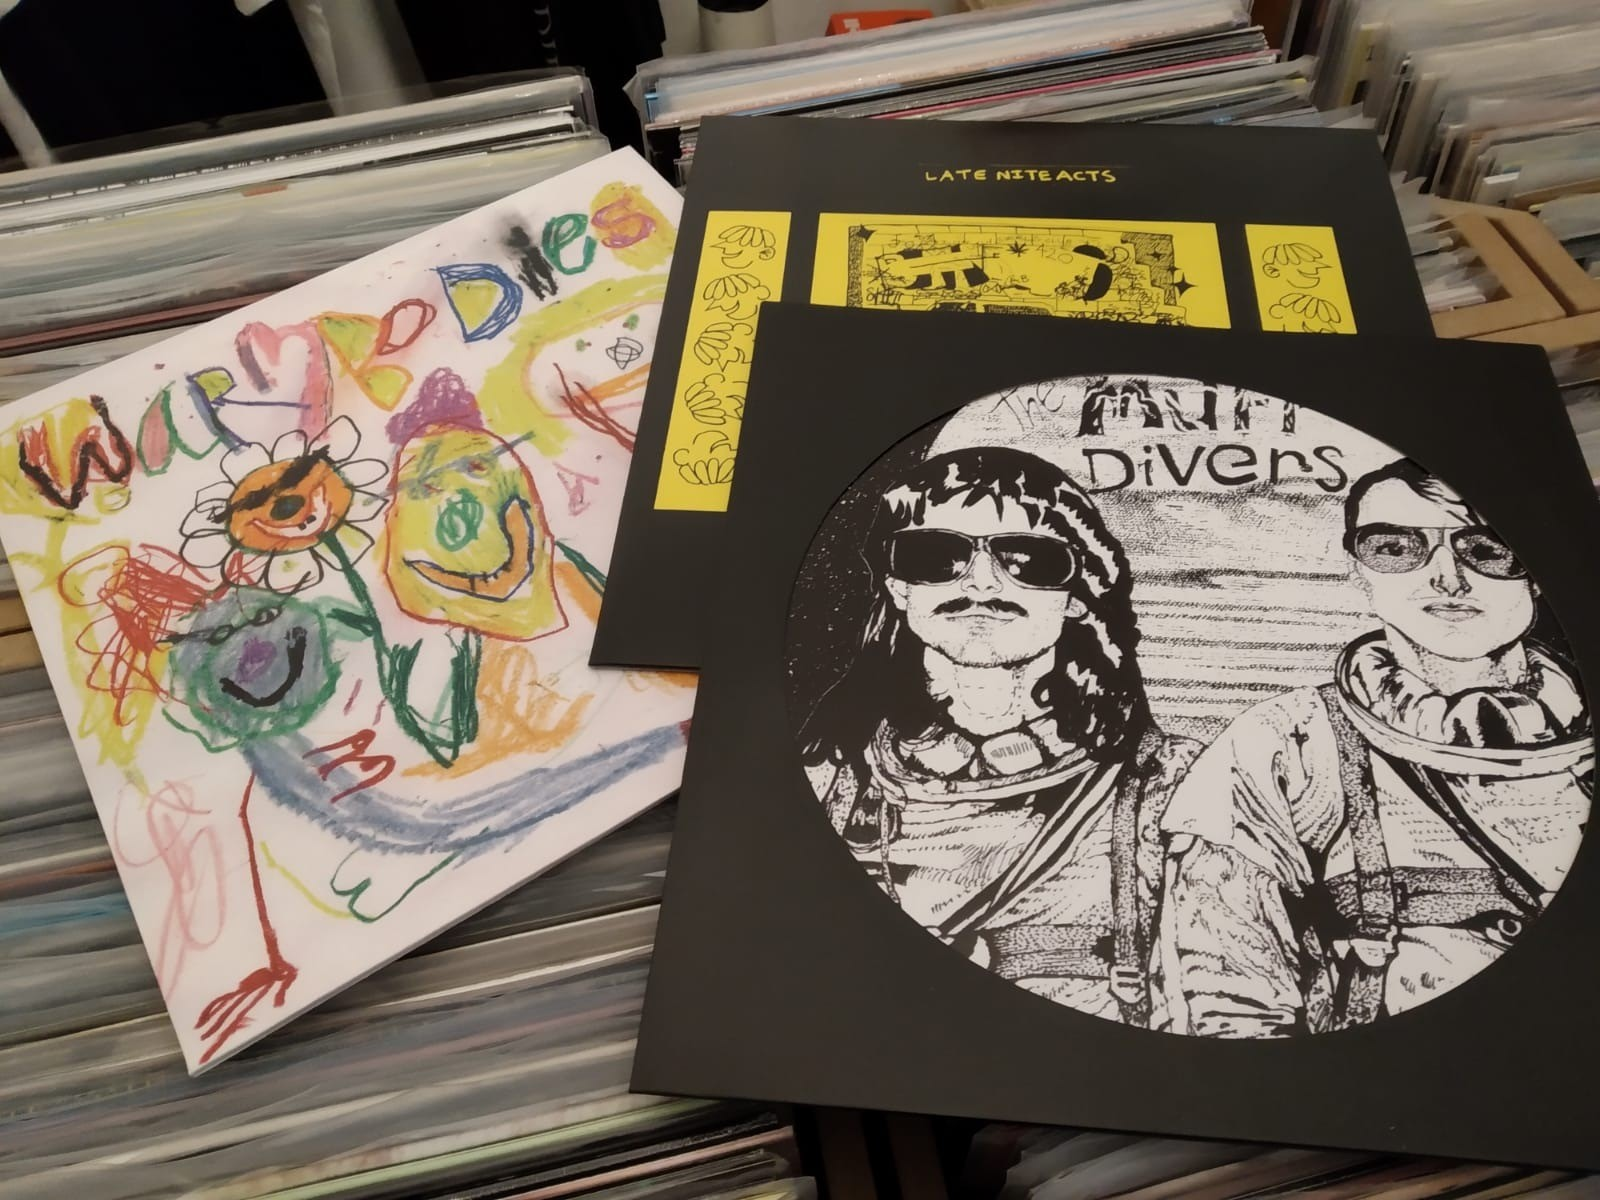 Bundle 2 - Muff Divers + Warm Bodies + Beta Boys LP